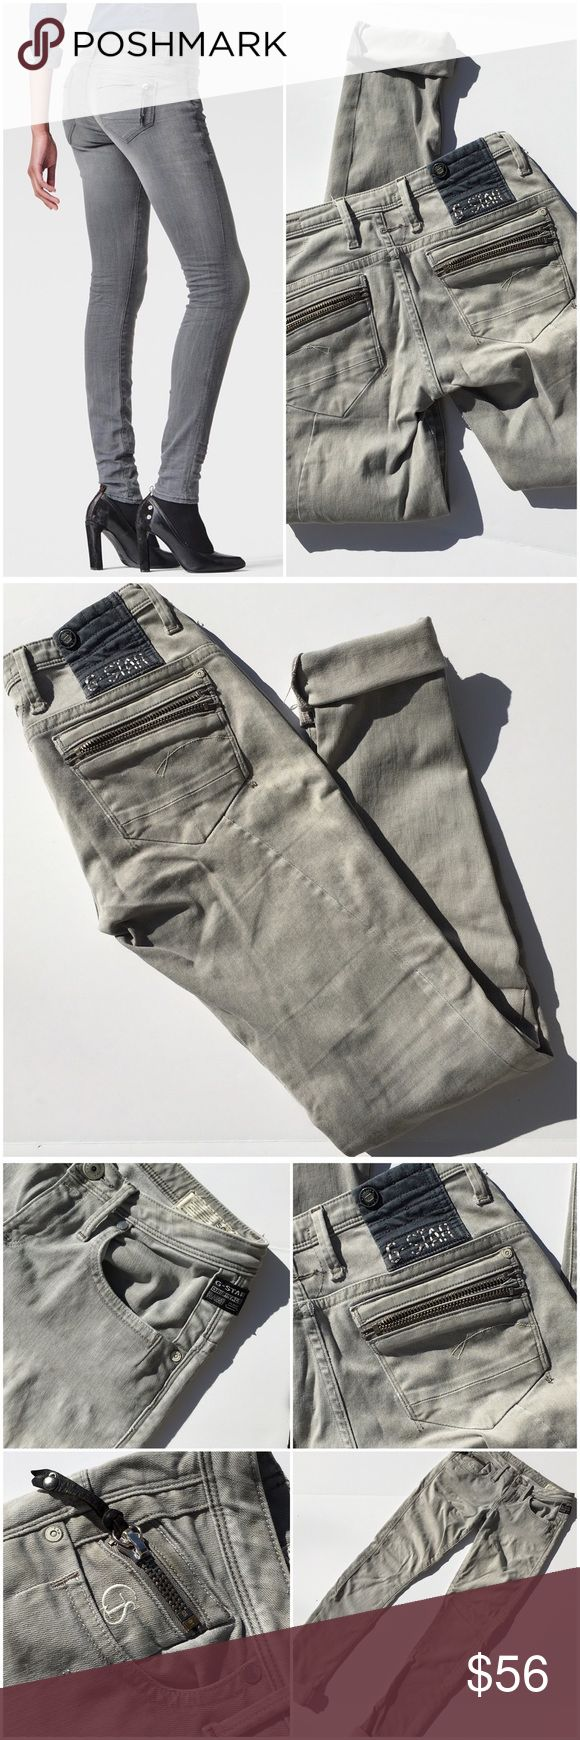 "G-Star Raw Jeans These are some of the coolest jeans I've ever owned, the fit and construction is amazing. This brand's craftsmanship with street level edge is what it's all about. Inseam un-cuffed is 33.5"" (13 G-Star Jeans Skinny"